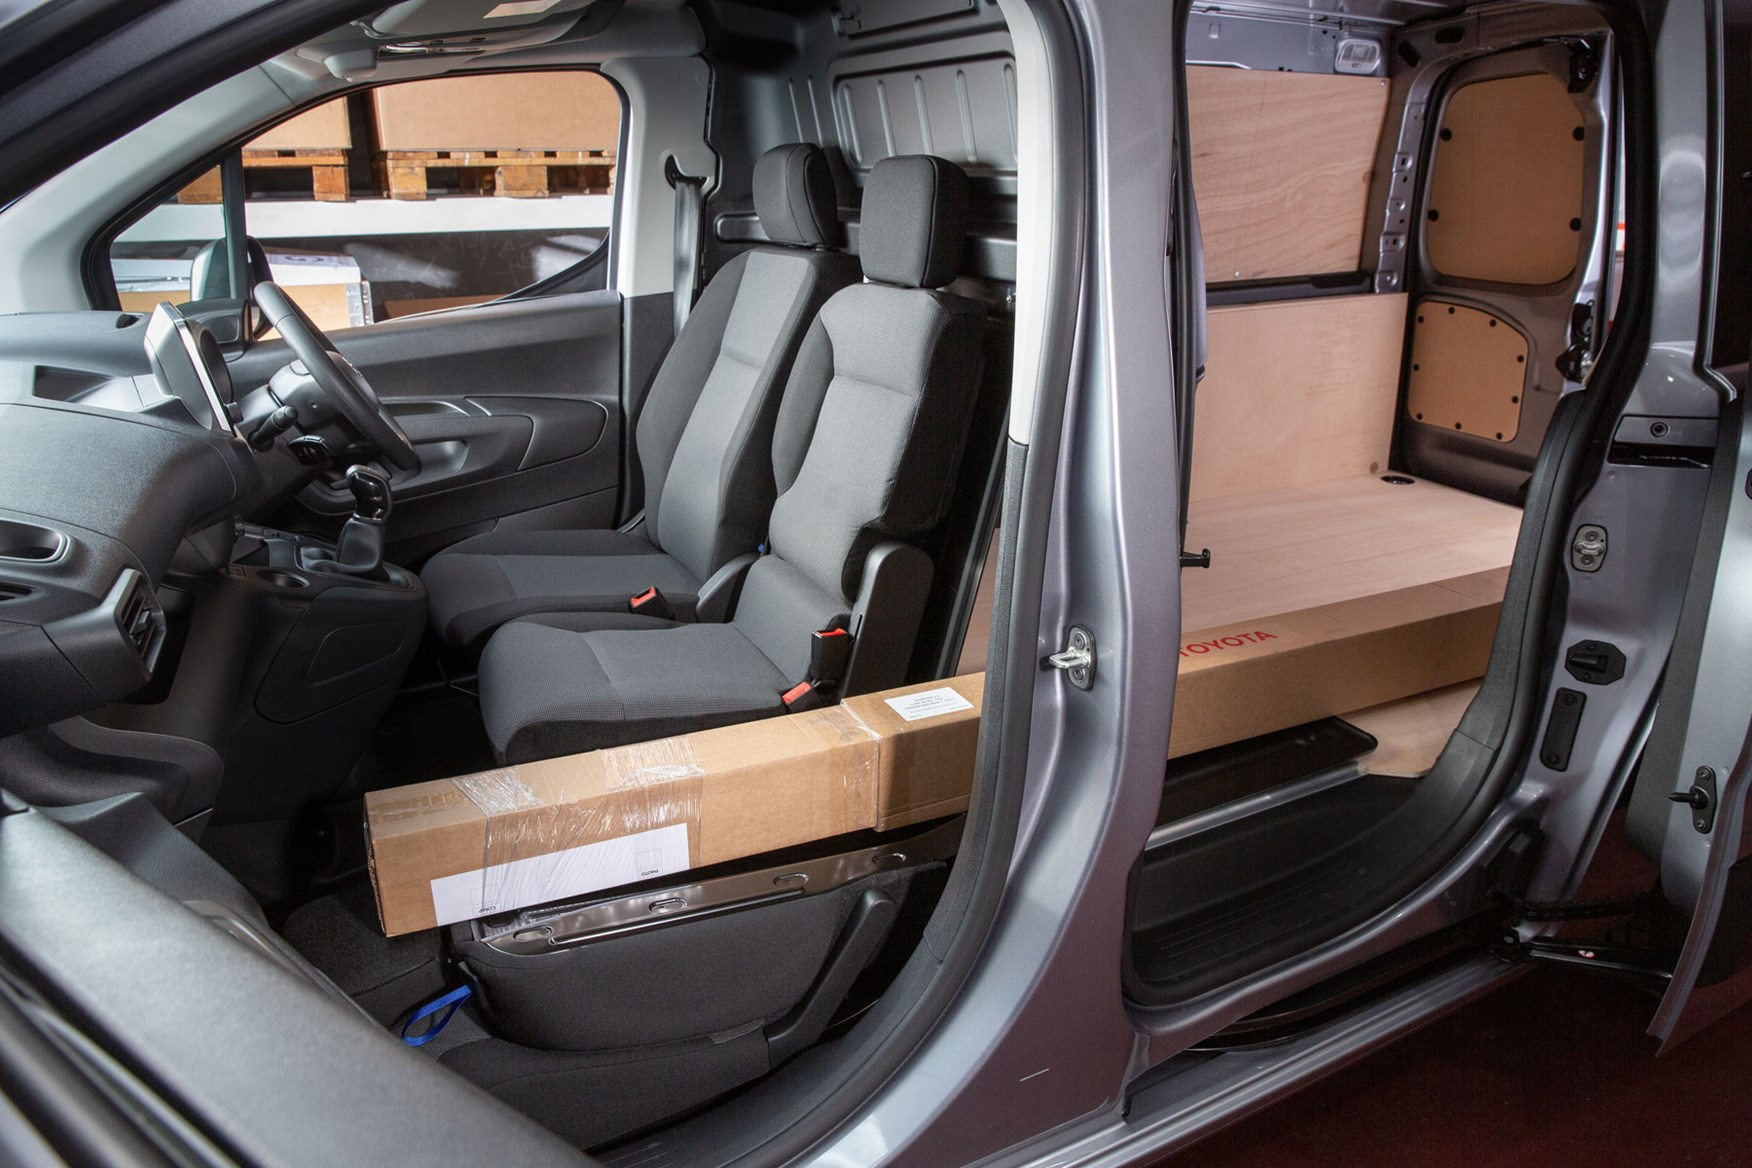 2020 Toyota Proace City, interior, showing Smart Cargo